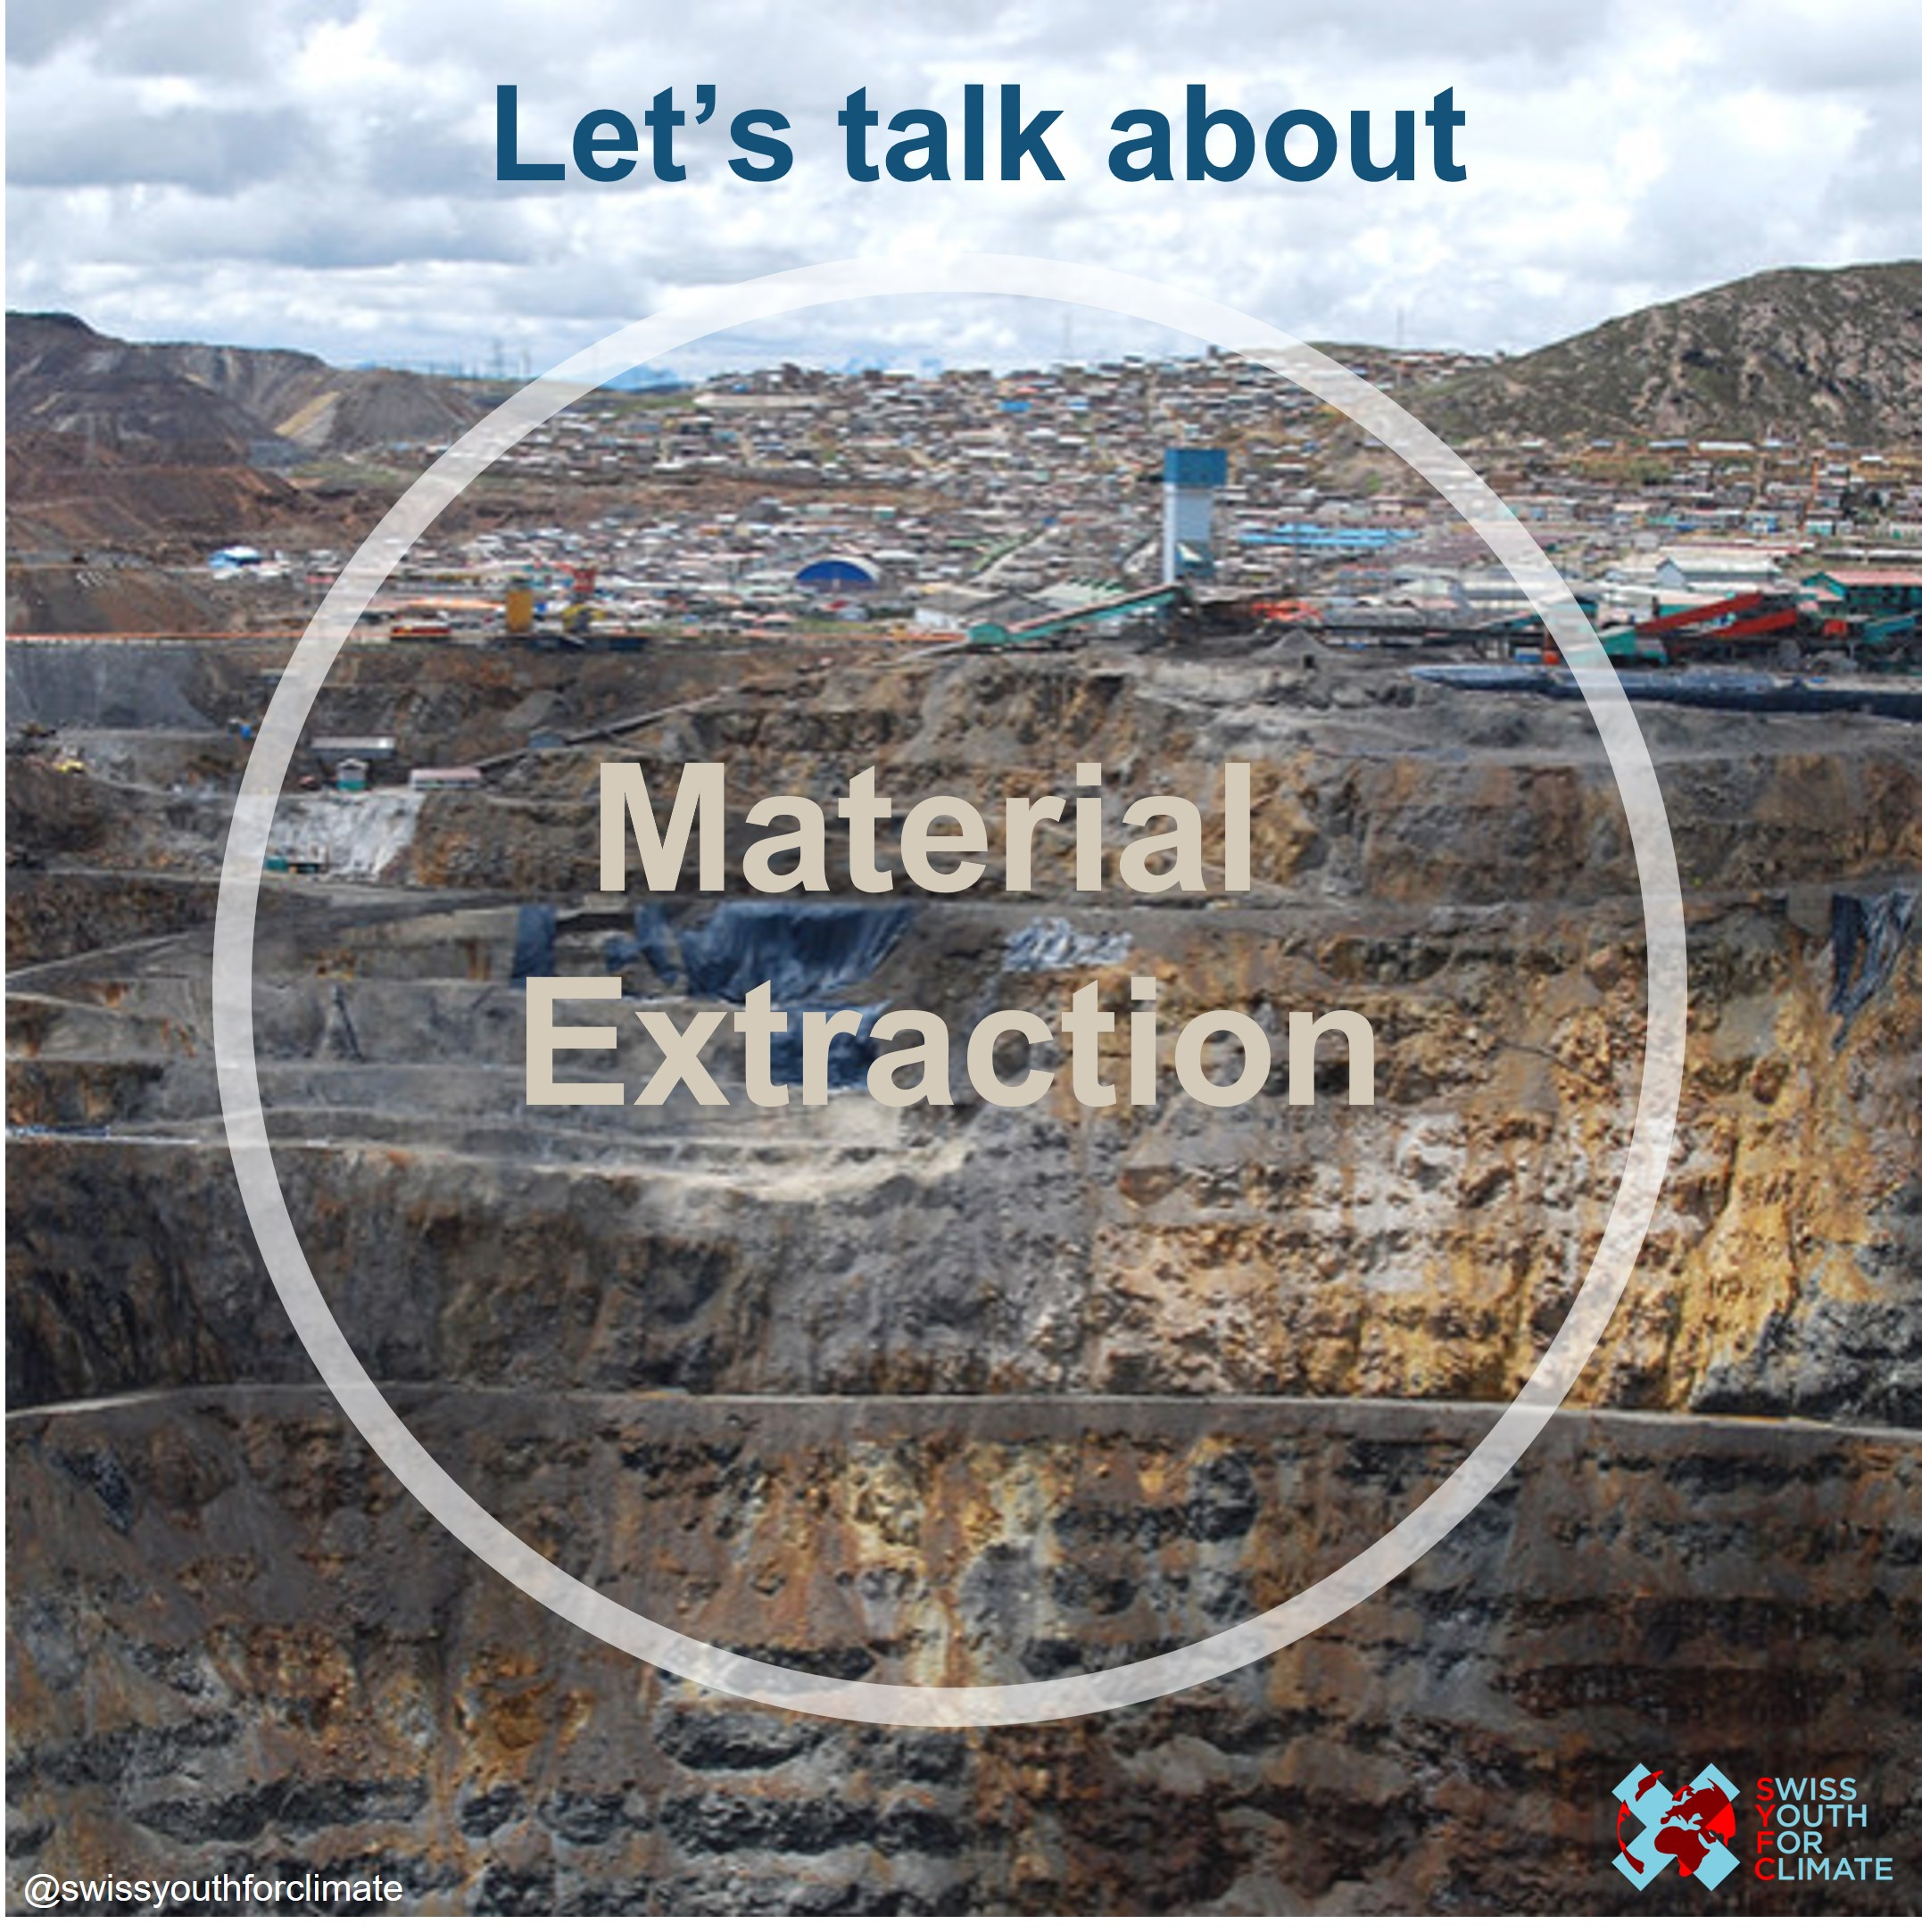 Material Extraction